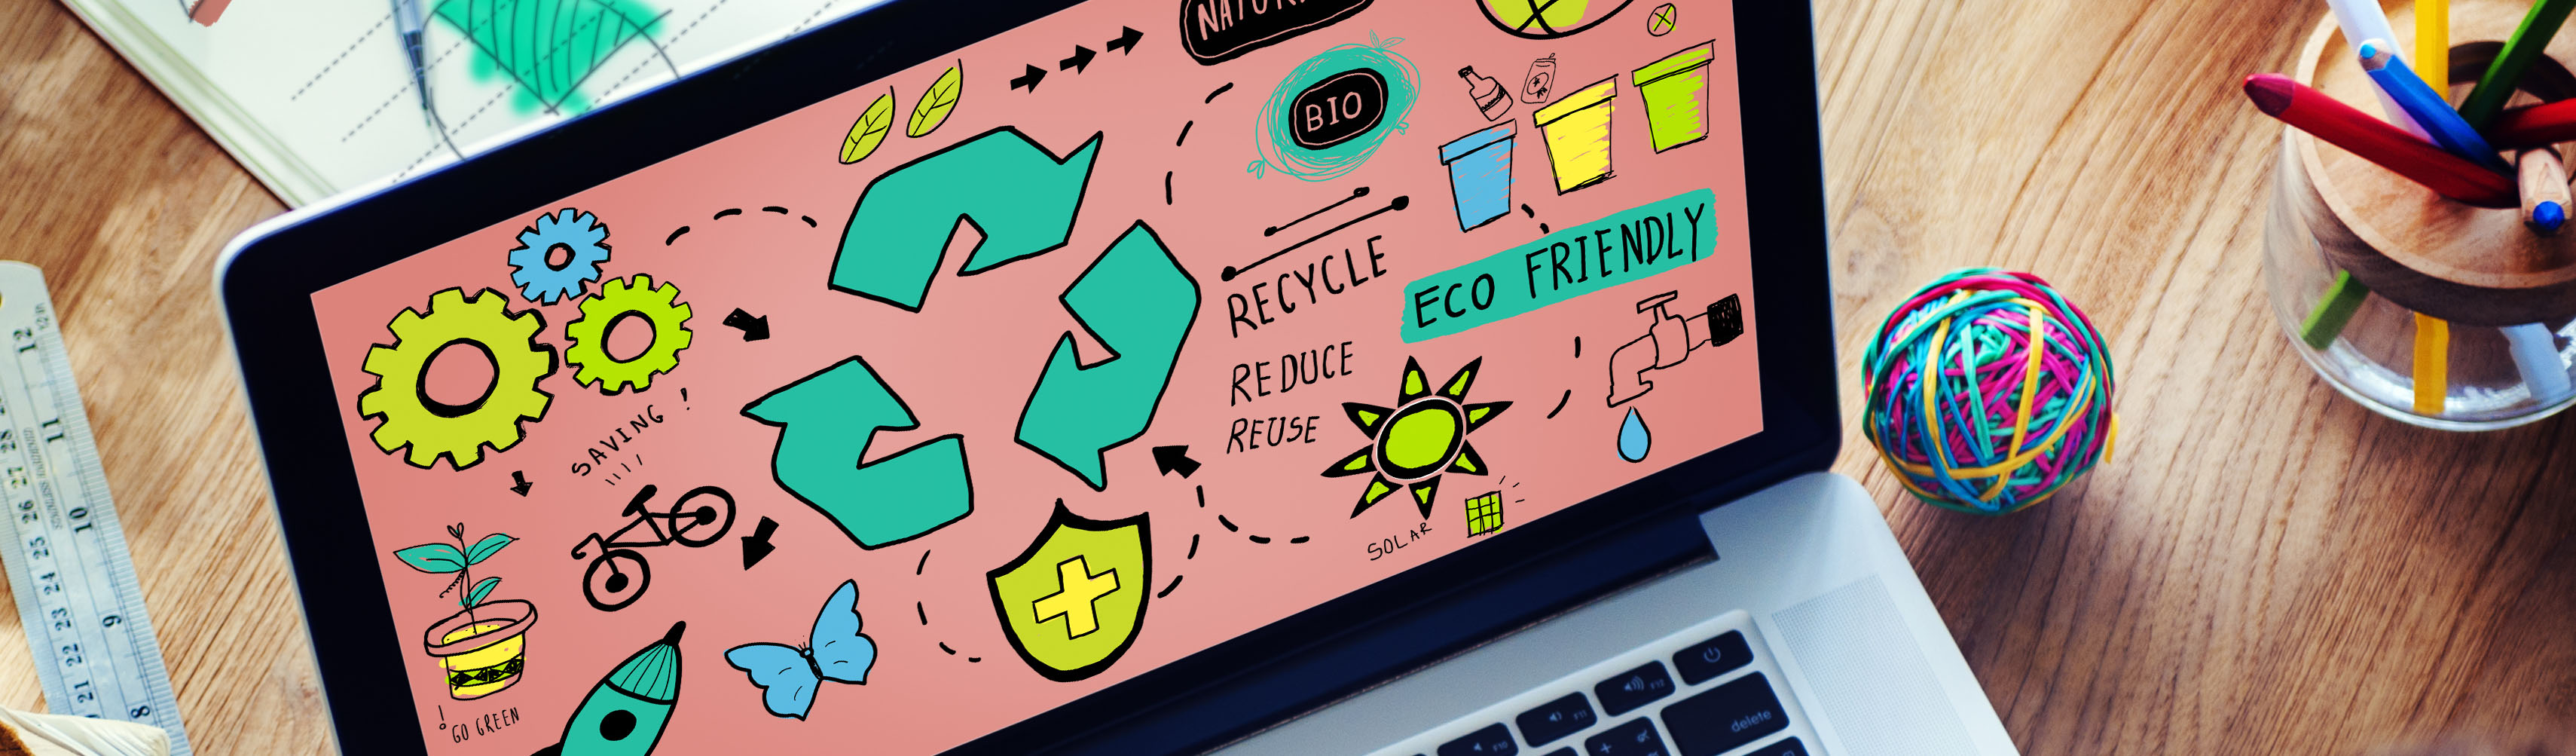 shutterstock_290654015_Recycle_750x220